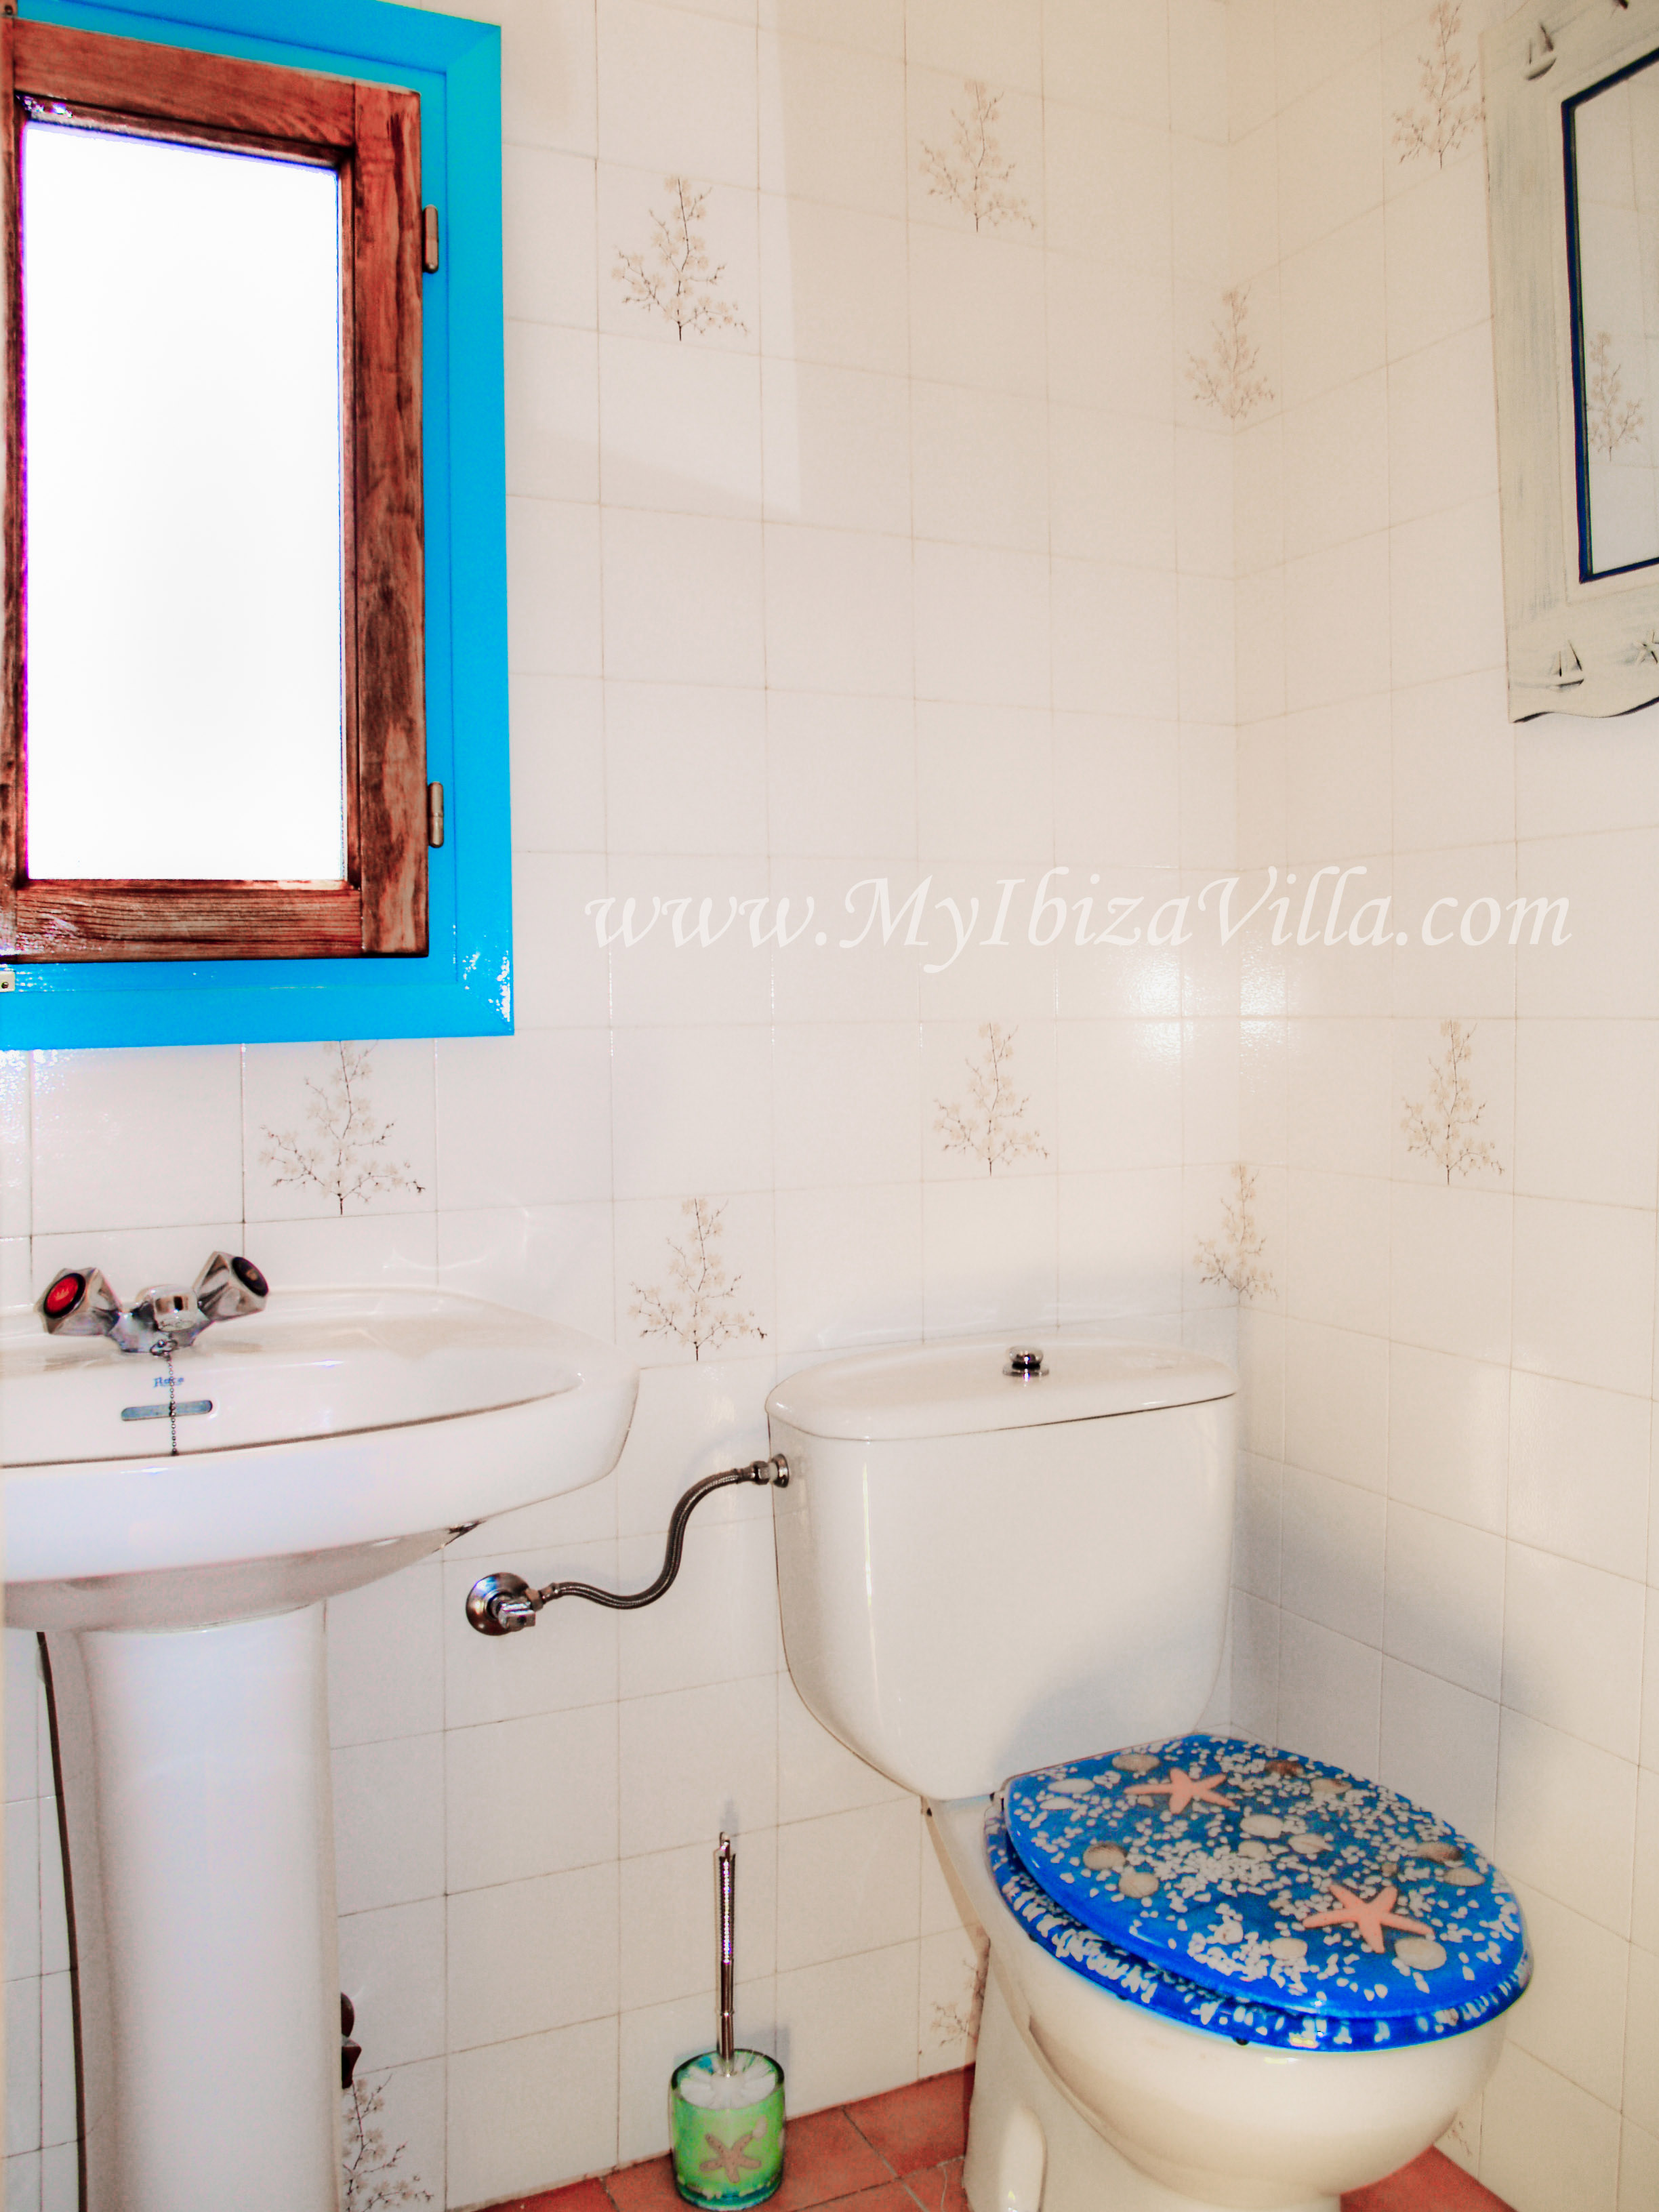 Shower room with toilet and sink in the Spain villa